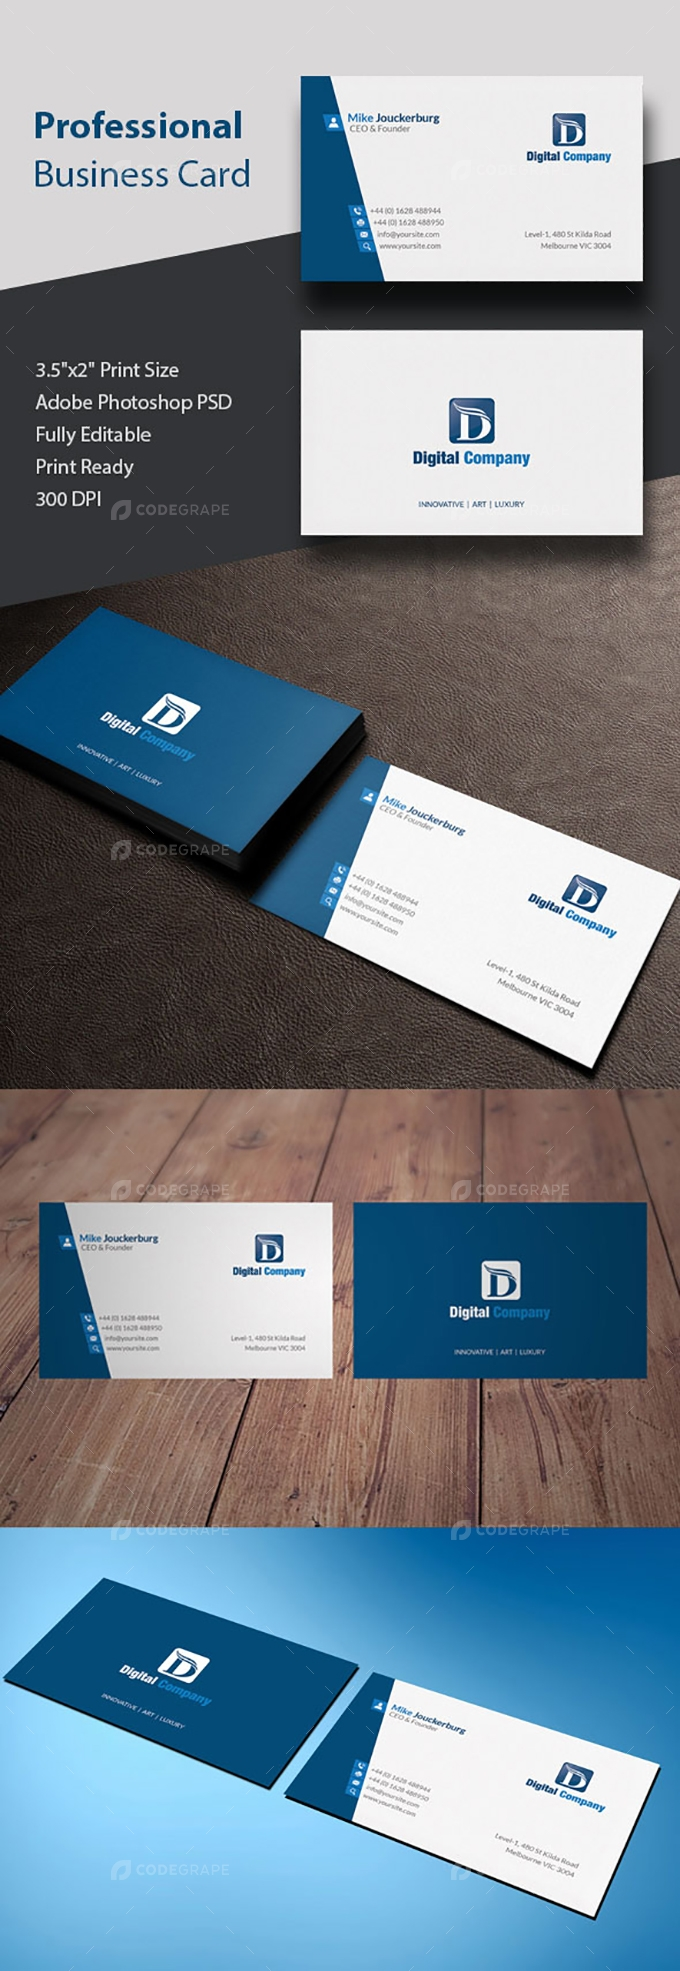 Professional Business Card Design - Print | CodeGrape